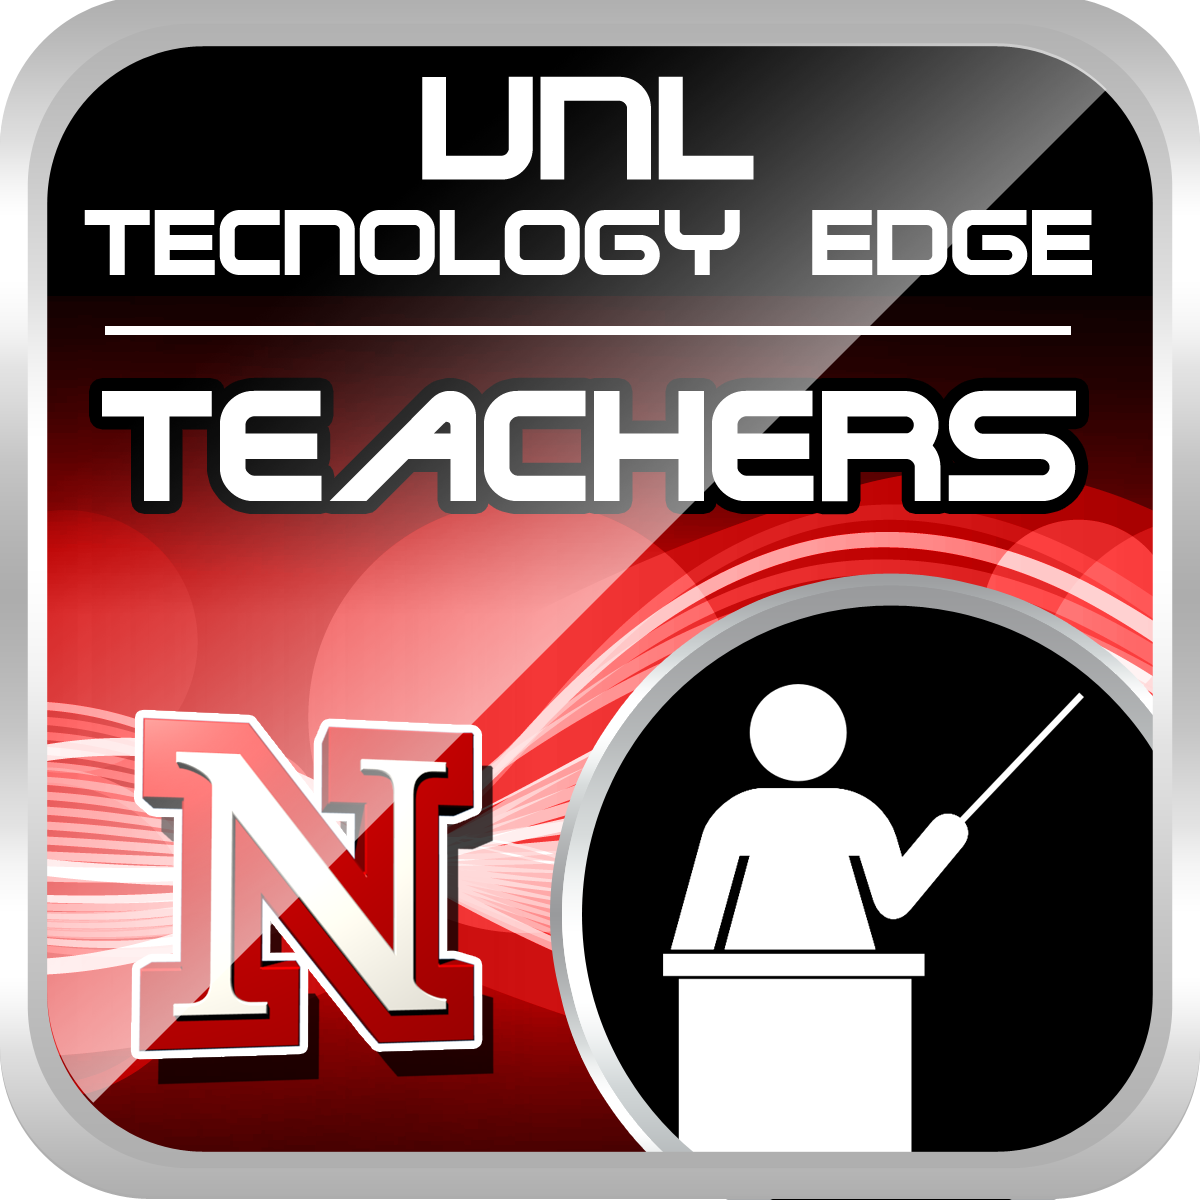 Tech EDGE - For Teachers Image